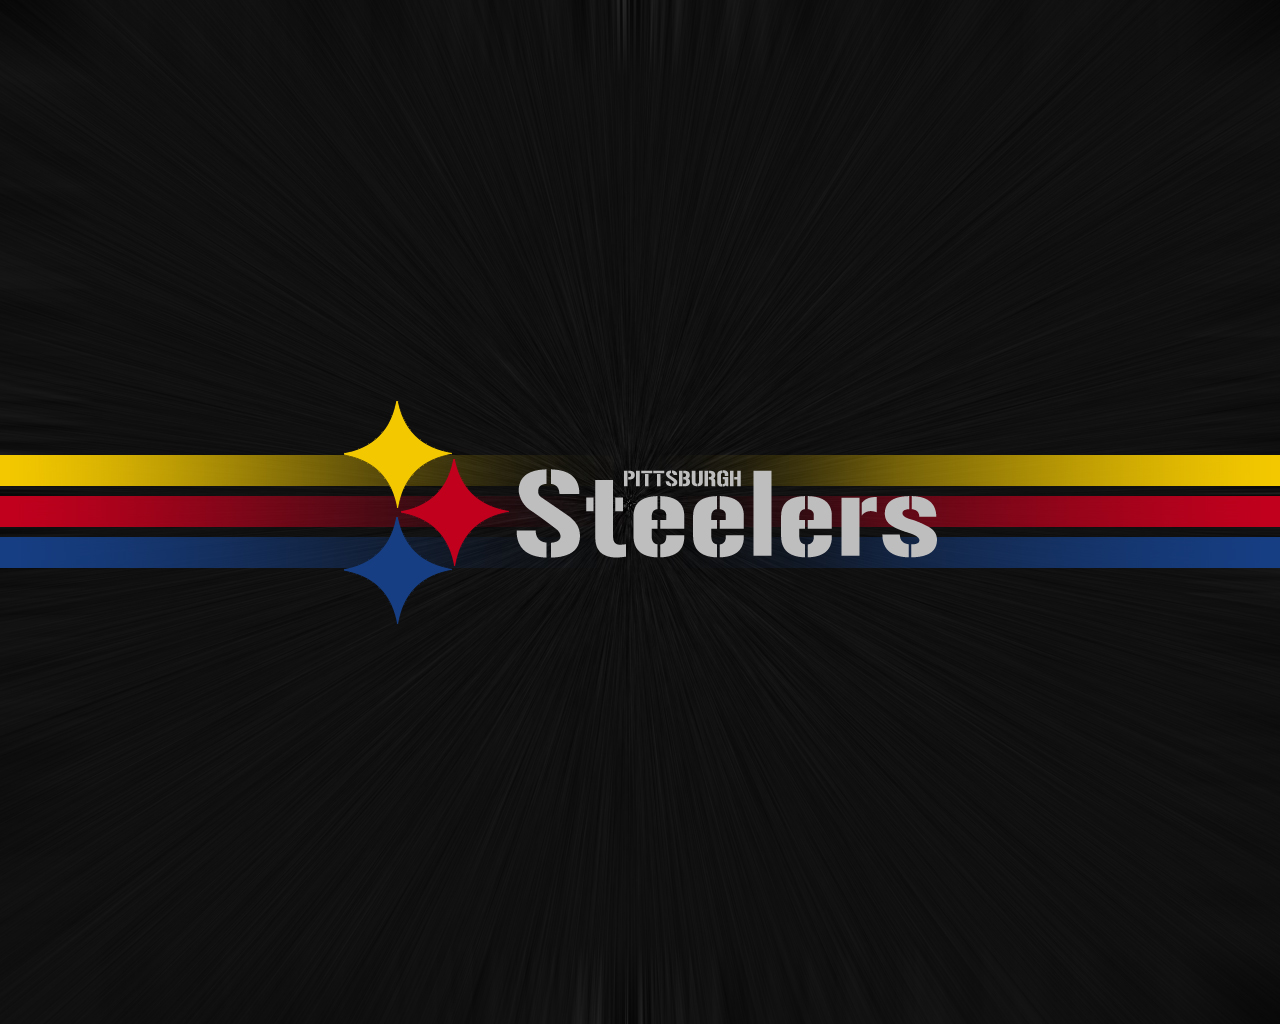 Steelers Wallpaper Top HD Wallpapers 1280x1024